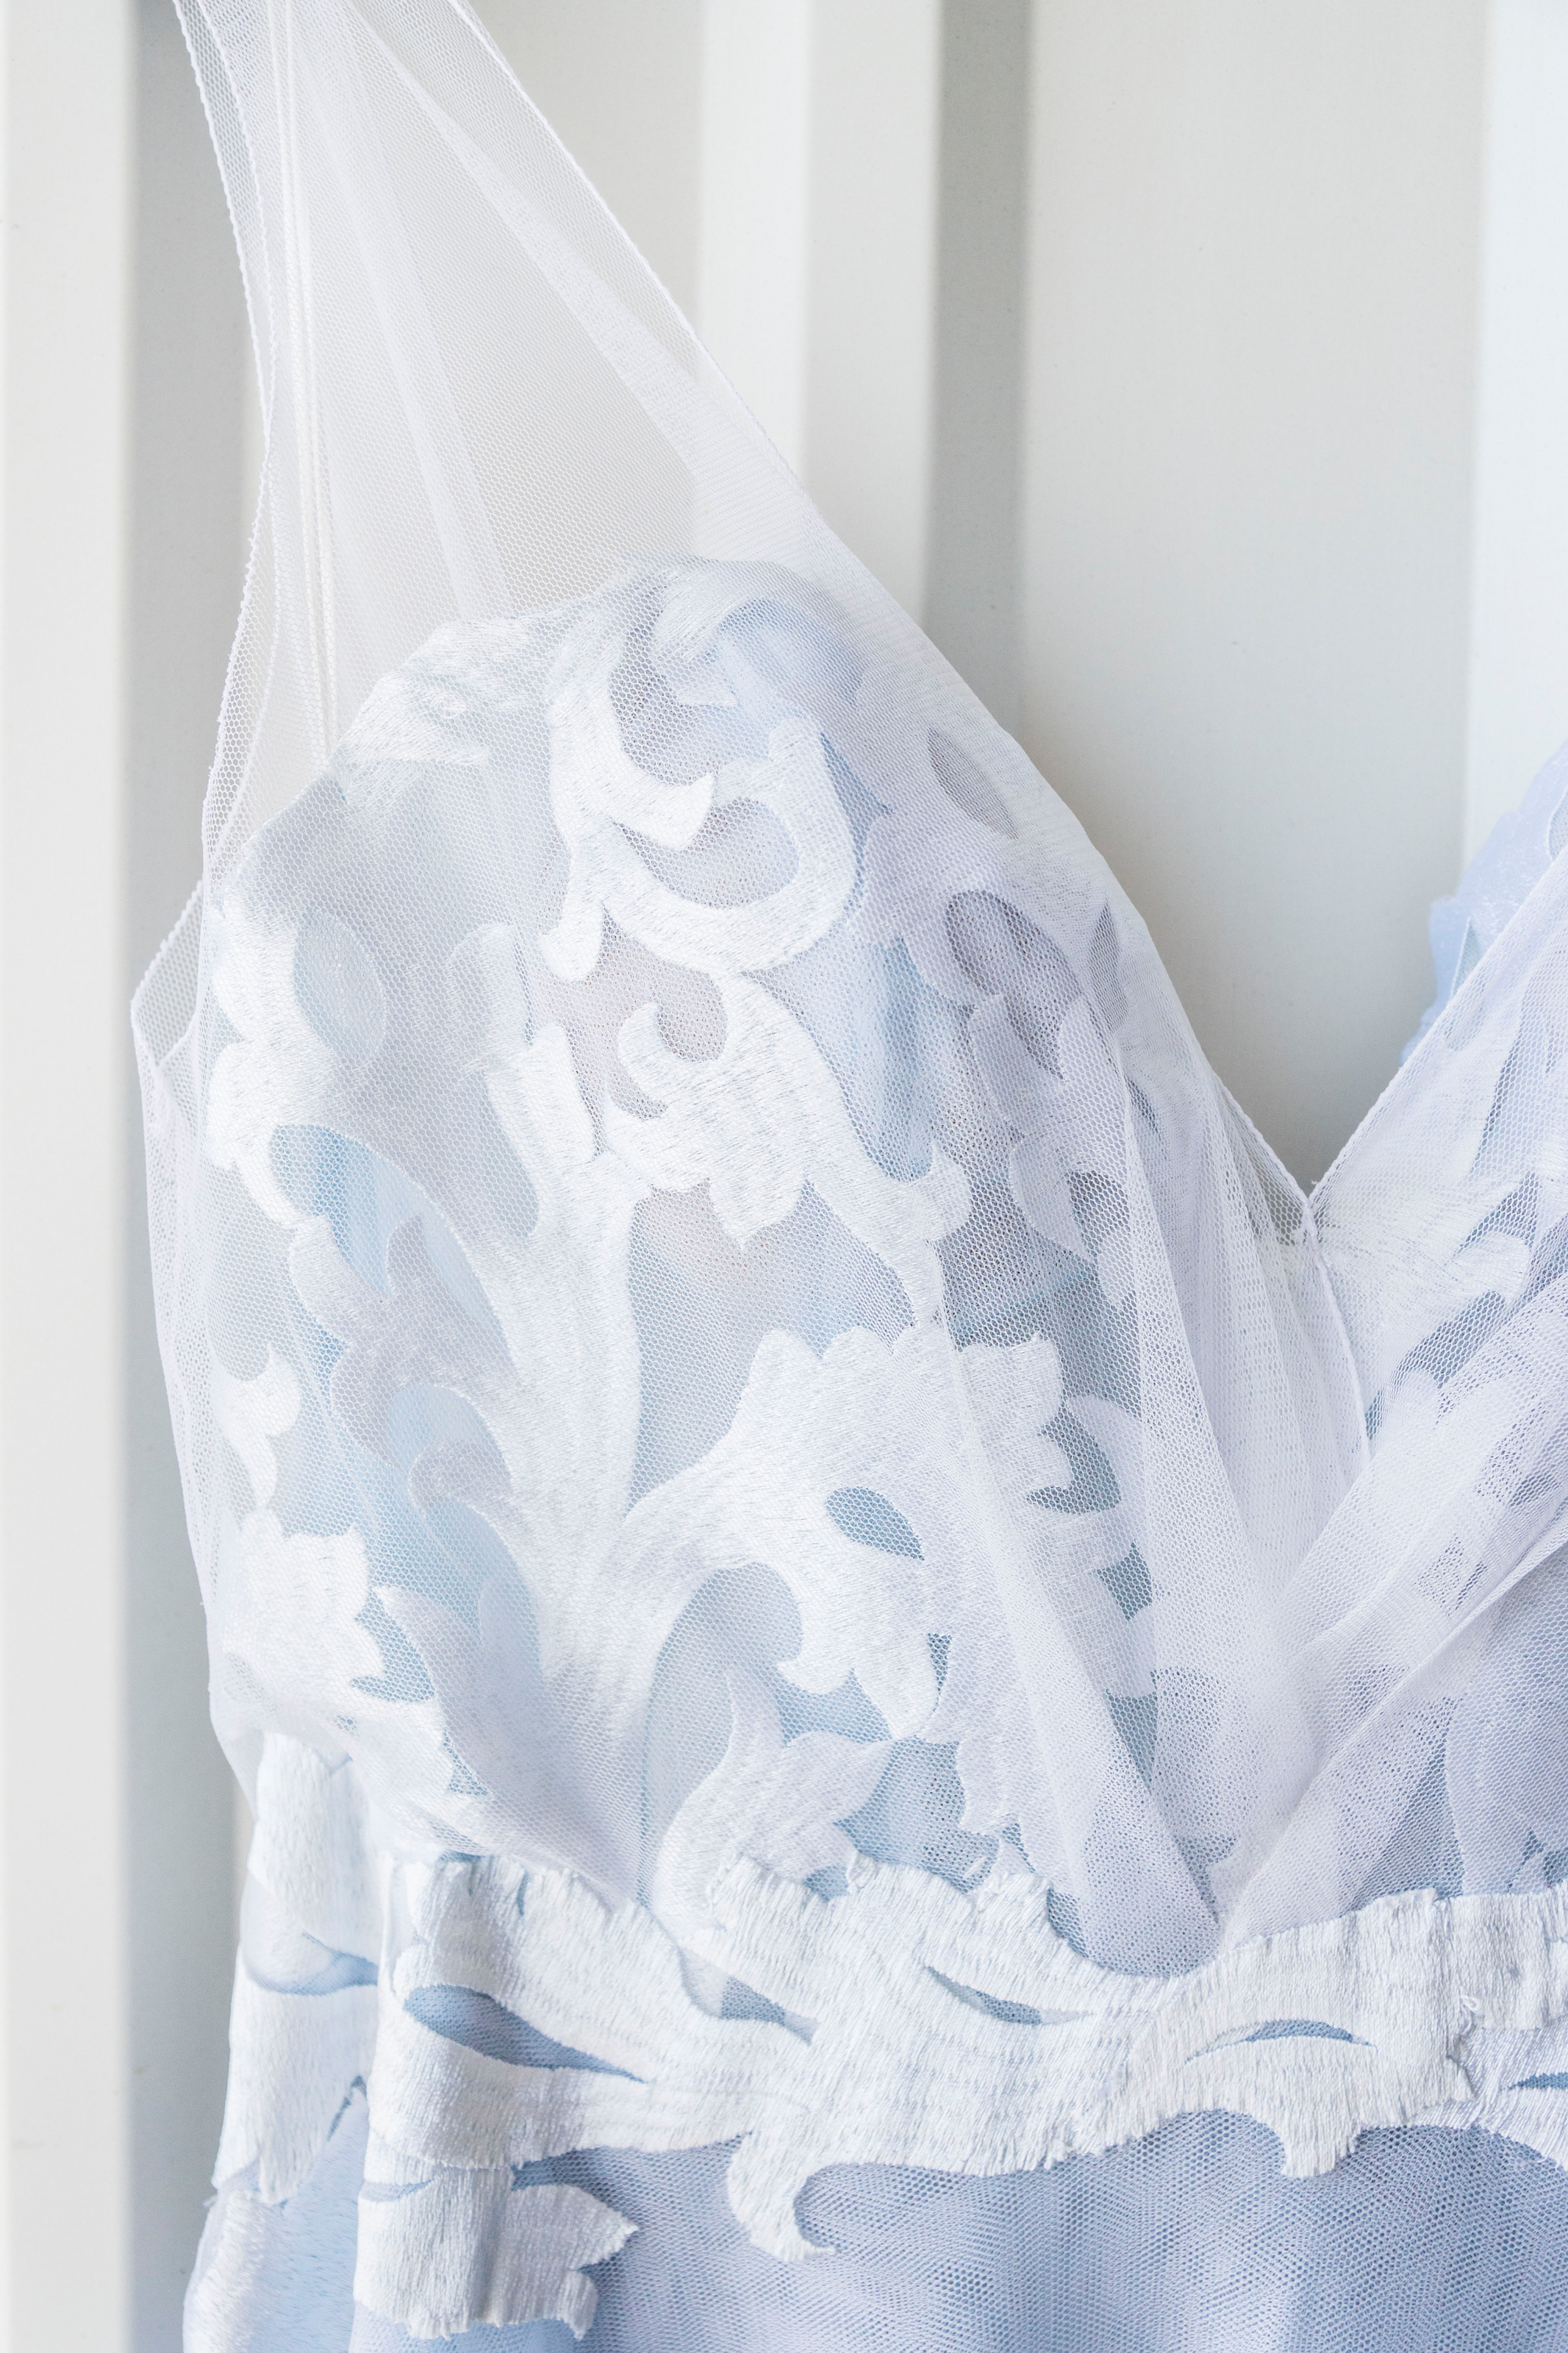 blue wedding dress detail.jpg